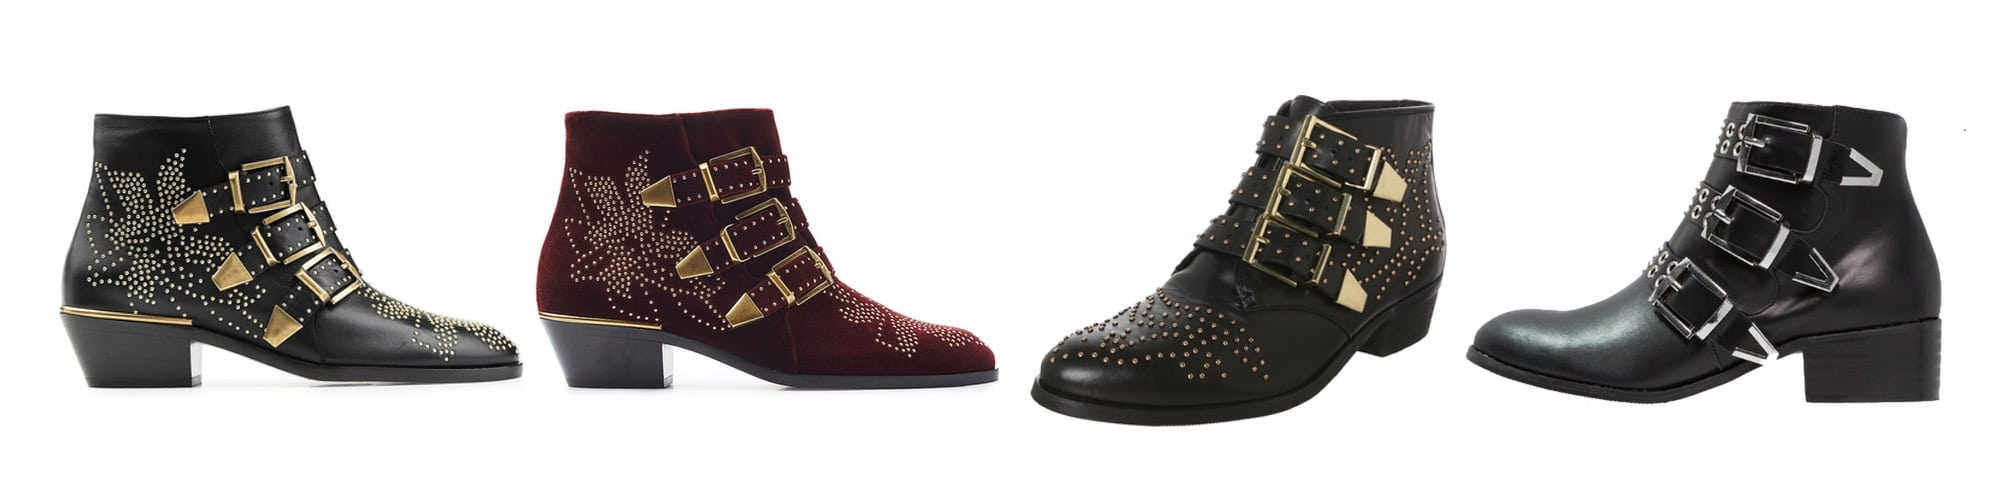 sommertrend-2017-boots